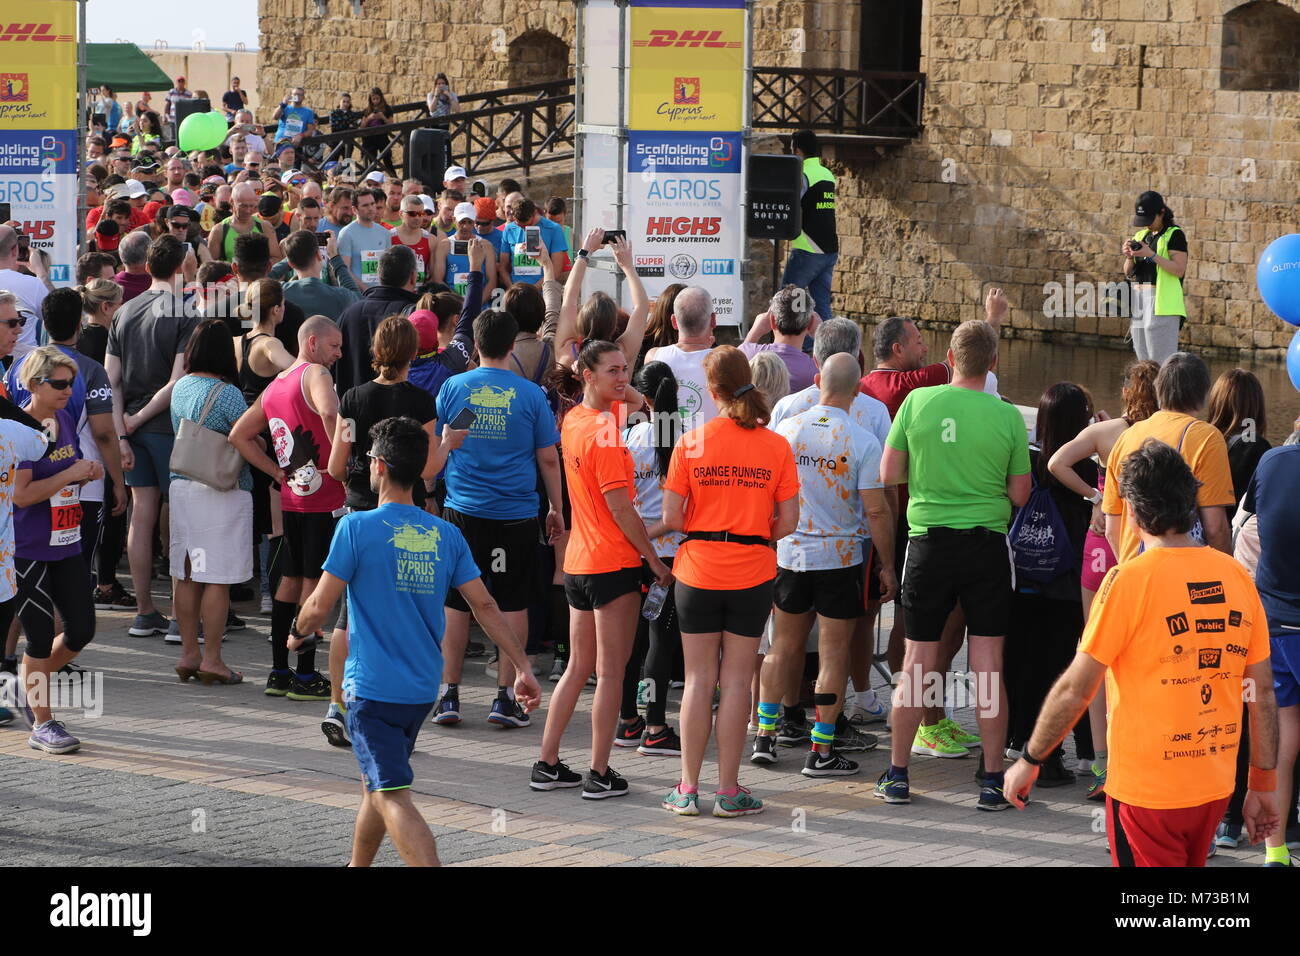 Competitors at the 20th Logicom Cyprus marathon, half marathon, 10KM, 5KM fun run - Stock Image